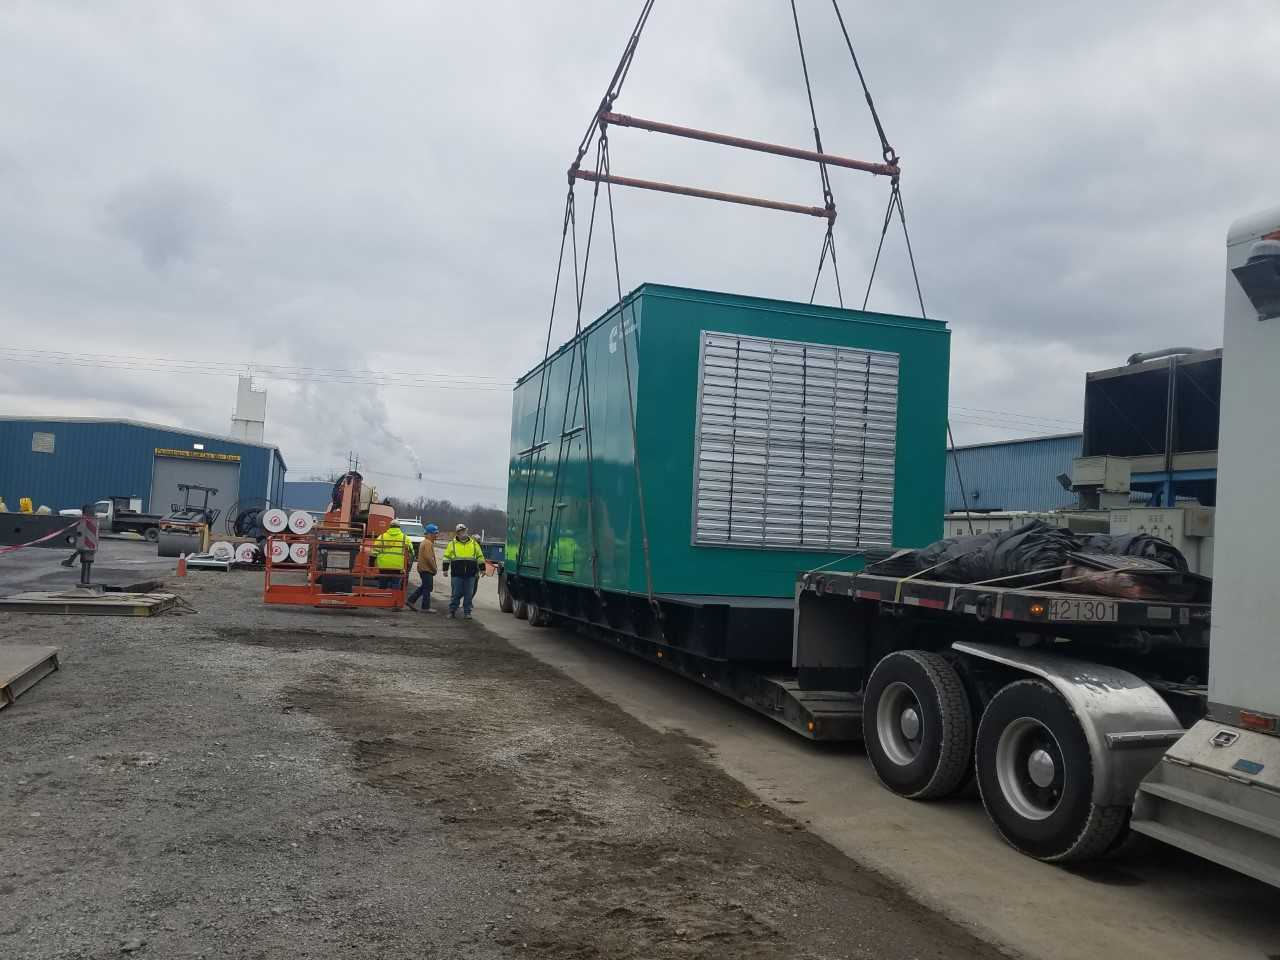 loading a large heavy generator with crane